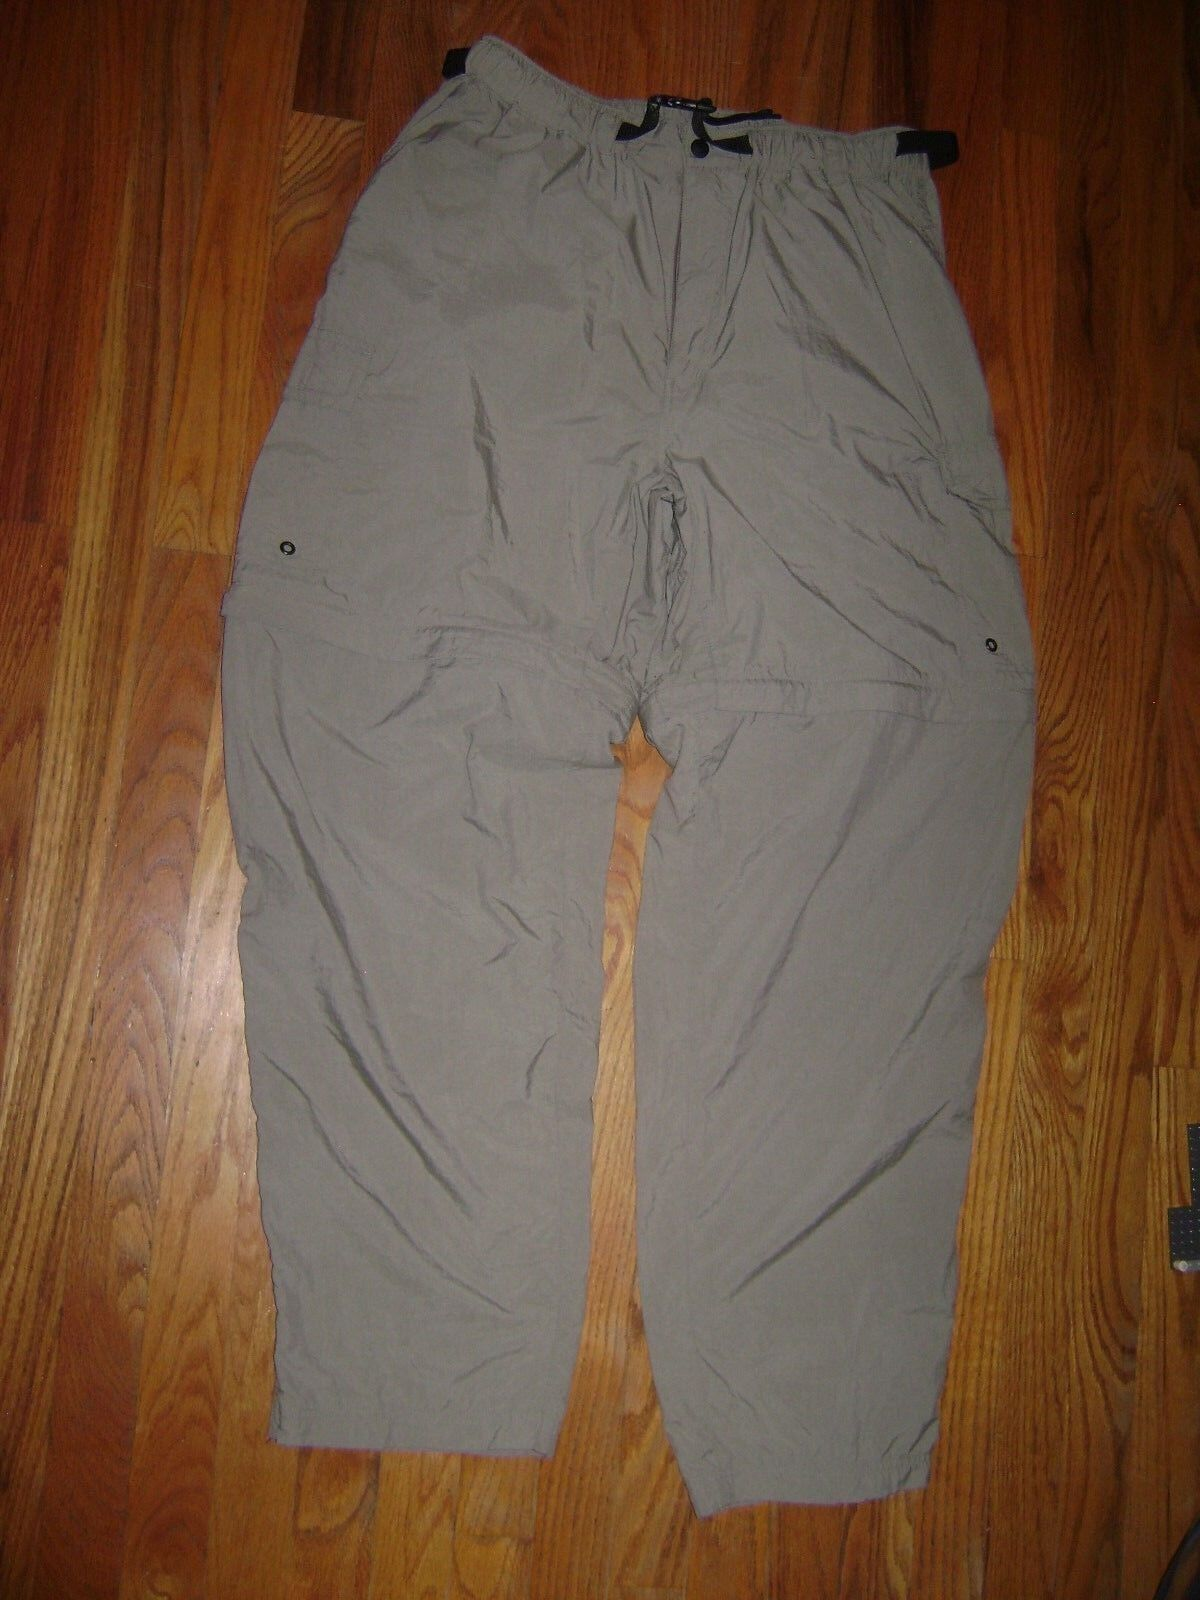 REI Pants Mens Size L Green Nylon Zip Off Congreenible Shorts Cargo Hike Camp